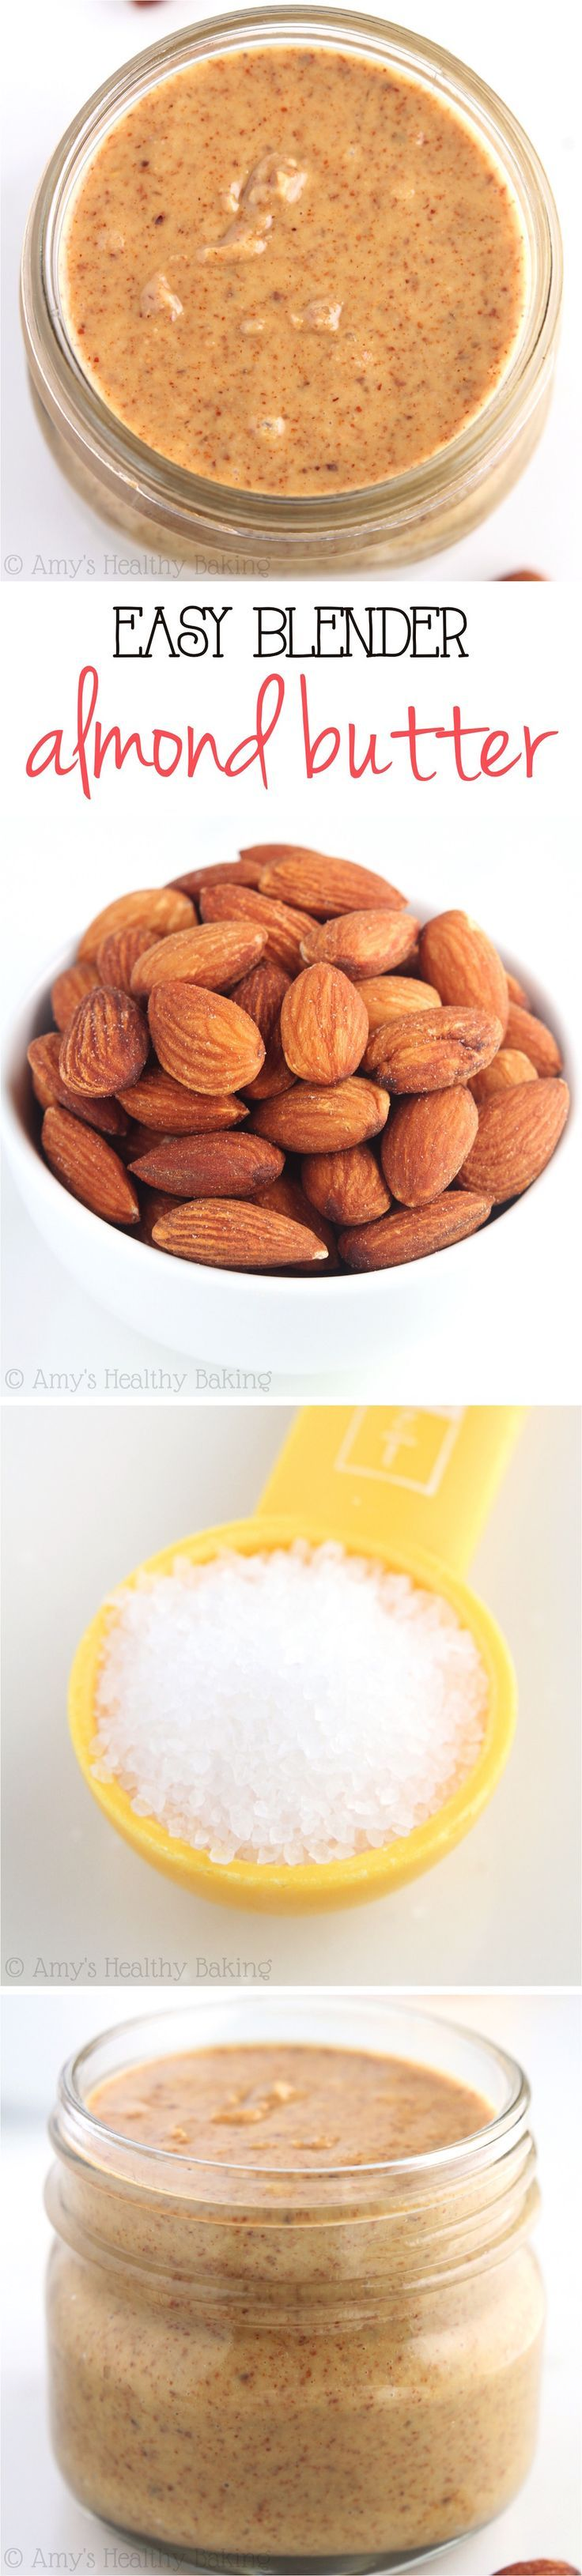 Easy Blender Almond Butter -- you just need 2 ingredients & 10 minutes! This tastes SO much better than store-bought for half the price!